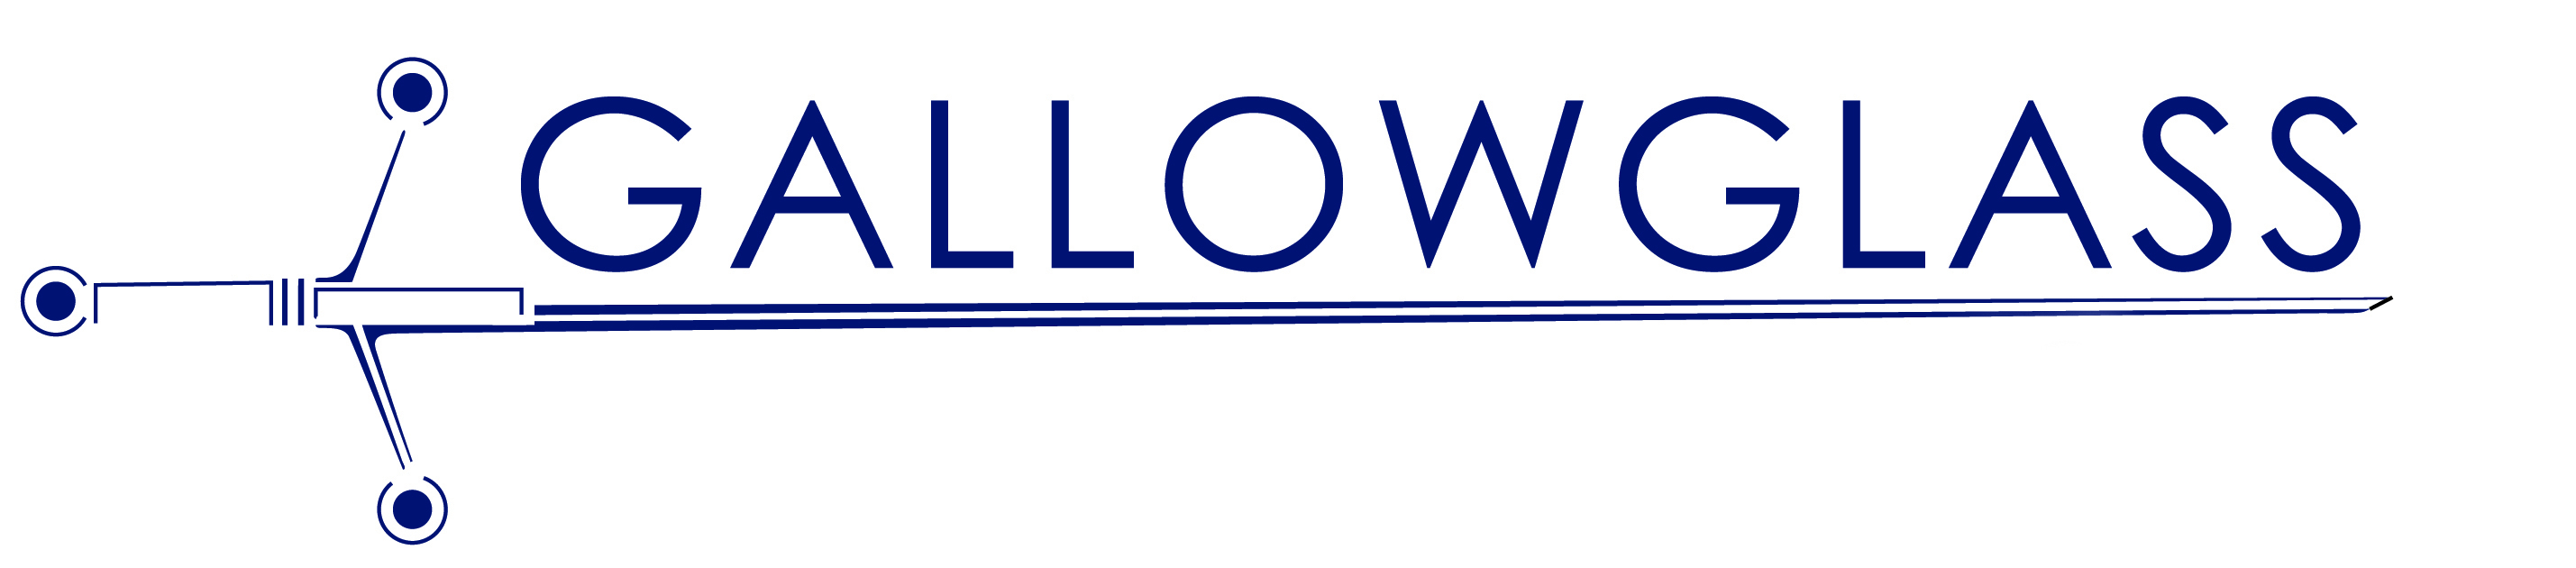 Gallowglass Logo